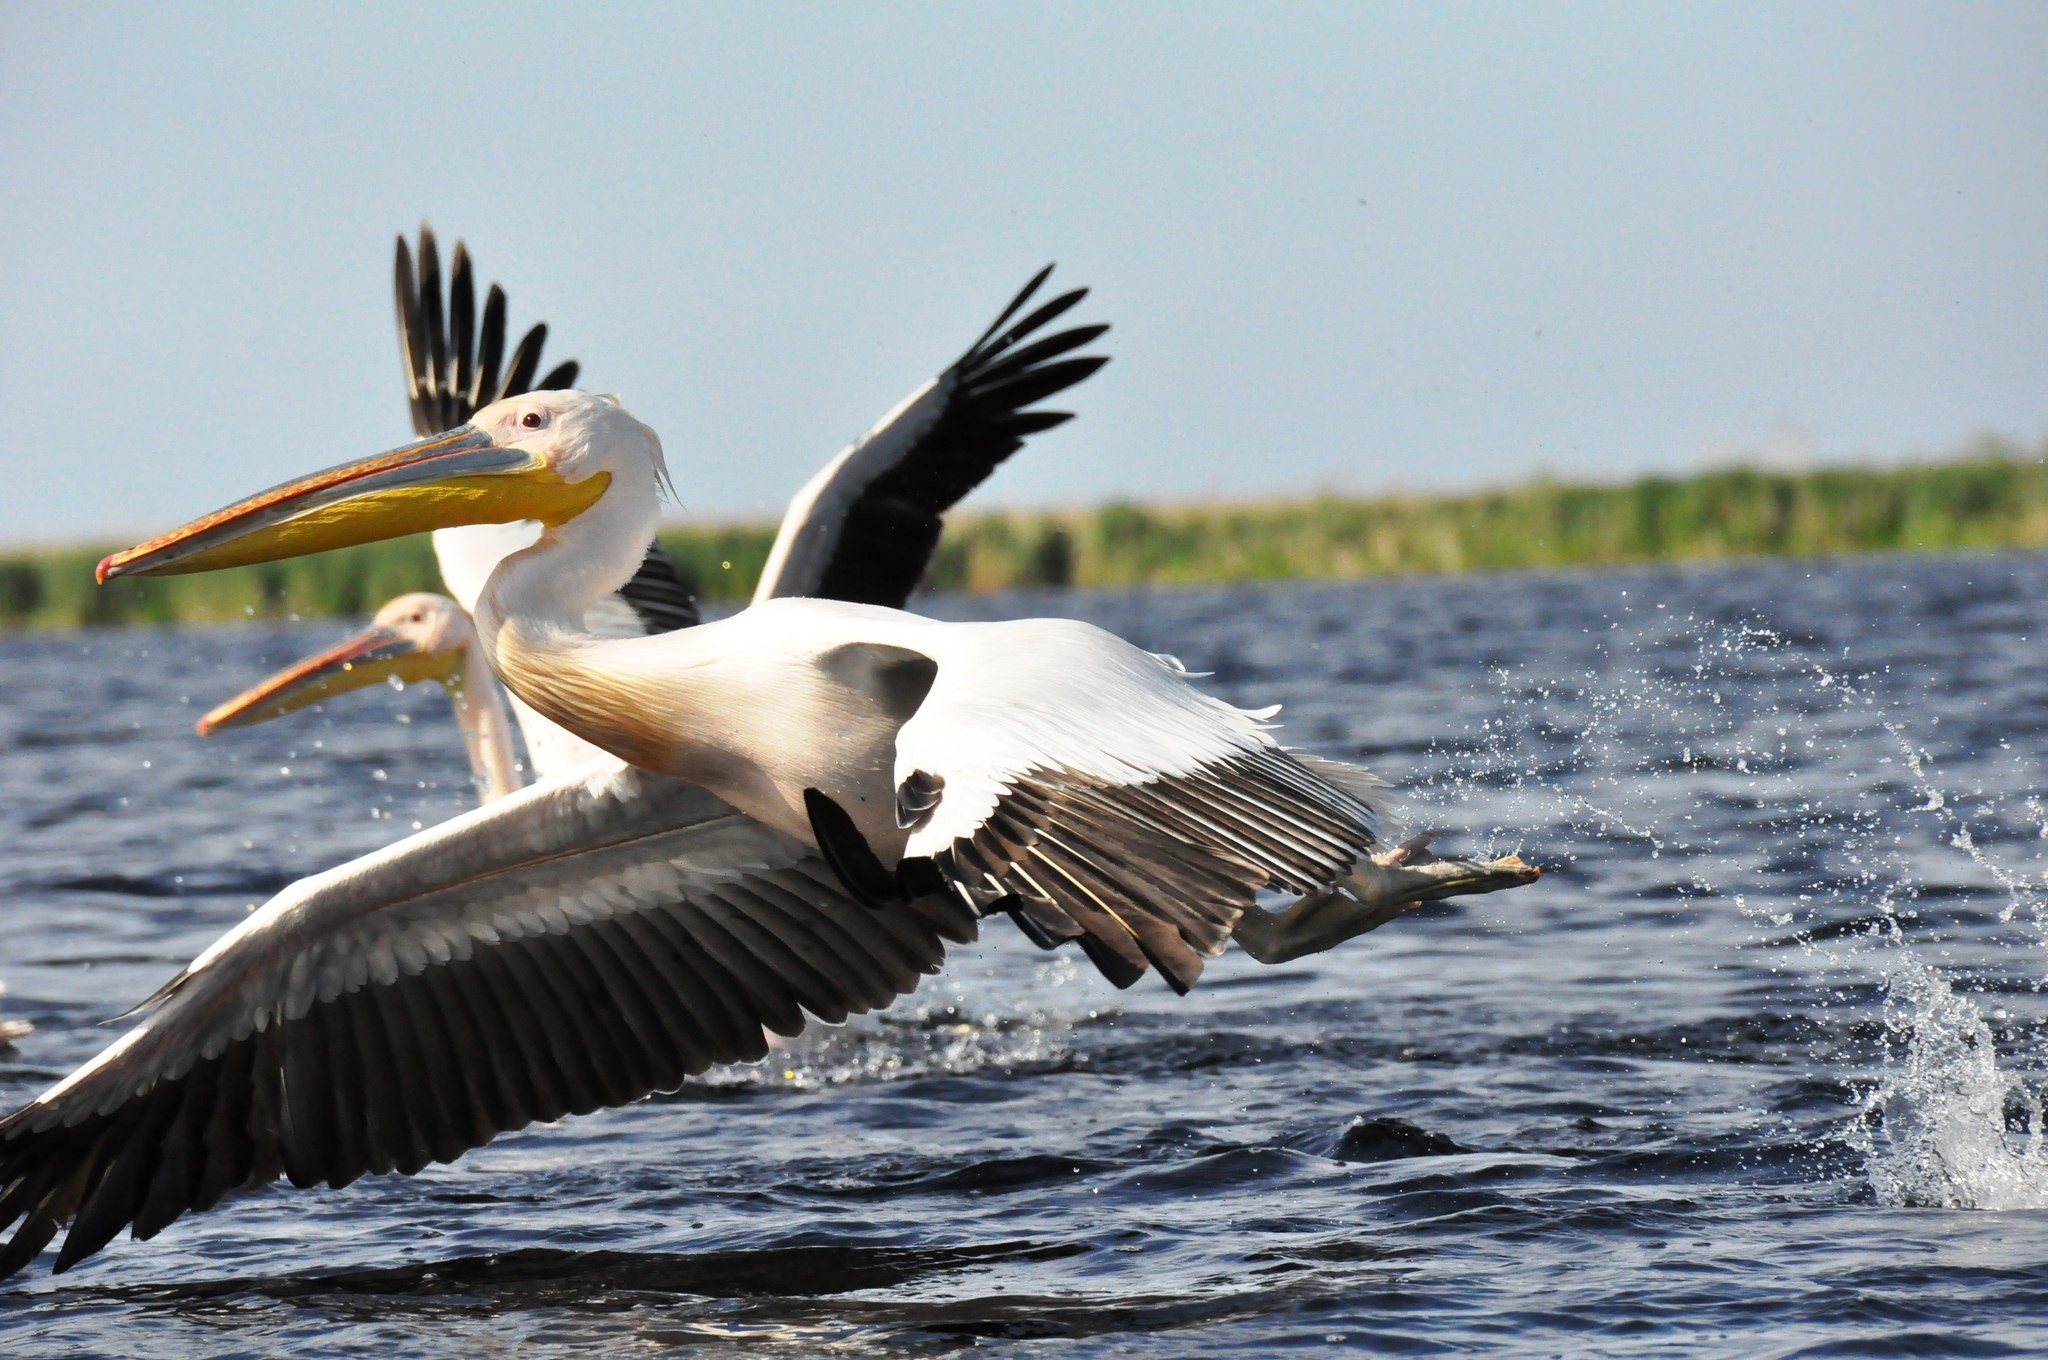 Pelican Background images